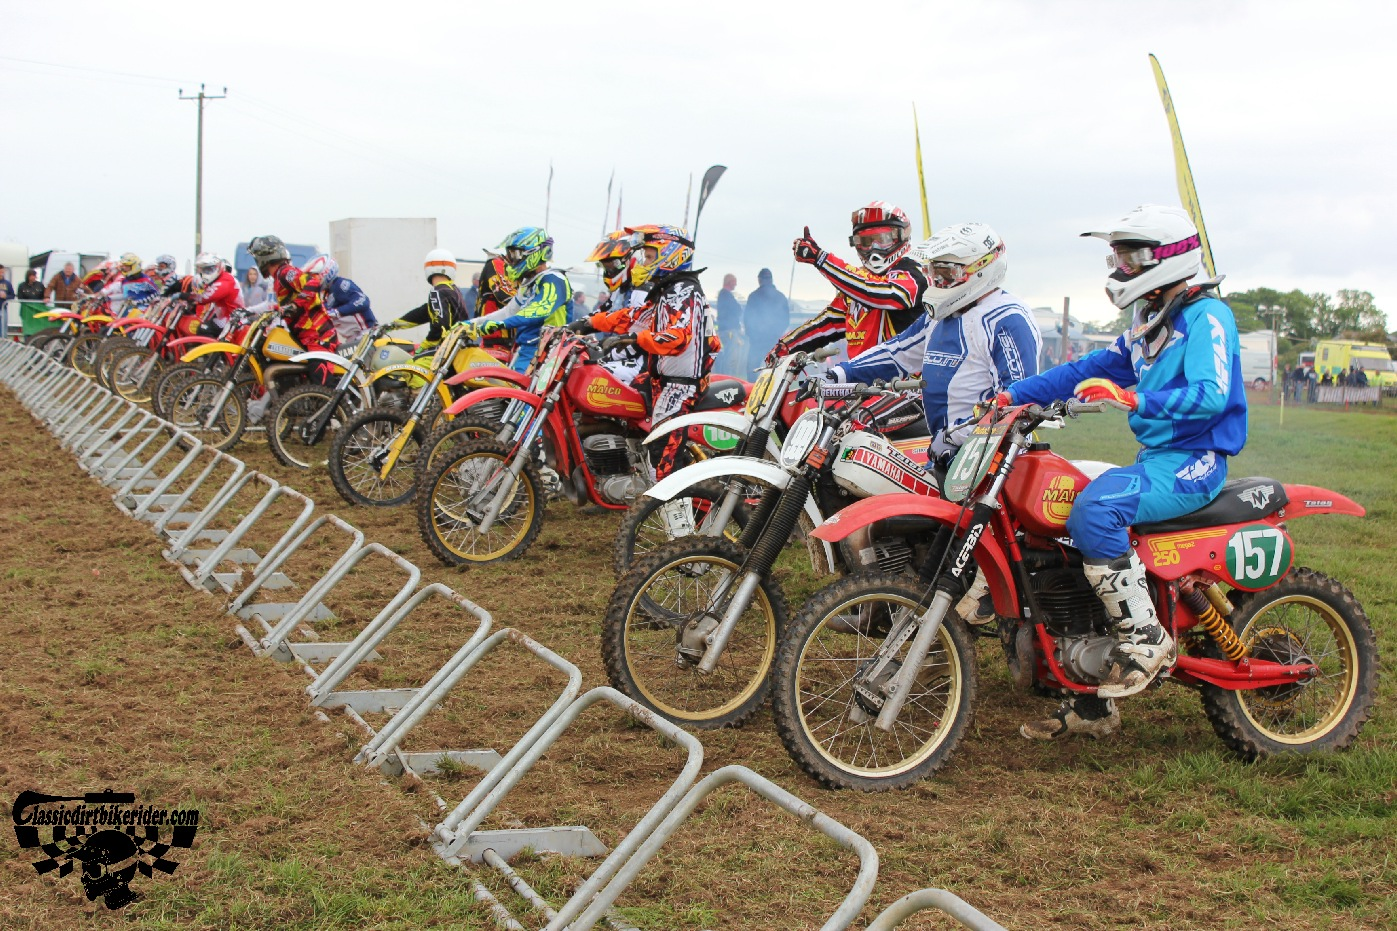 classicdirtbikerider.com-national-twinshock-championship-2015-Garstang-at the start gate ready to race 9